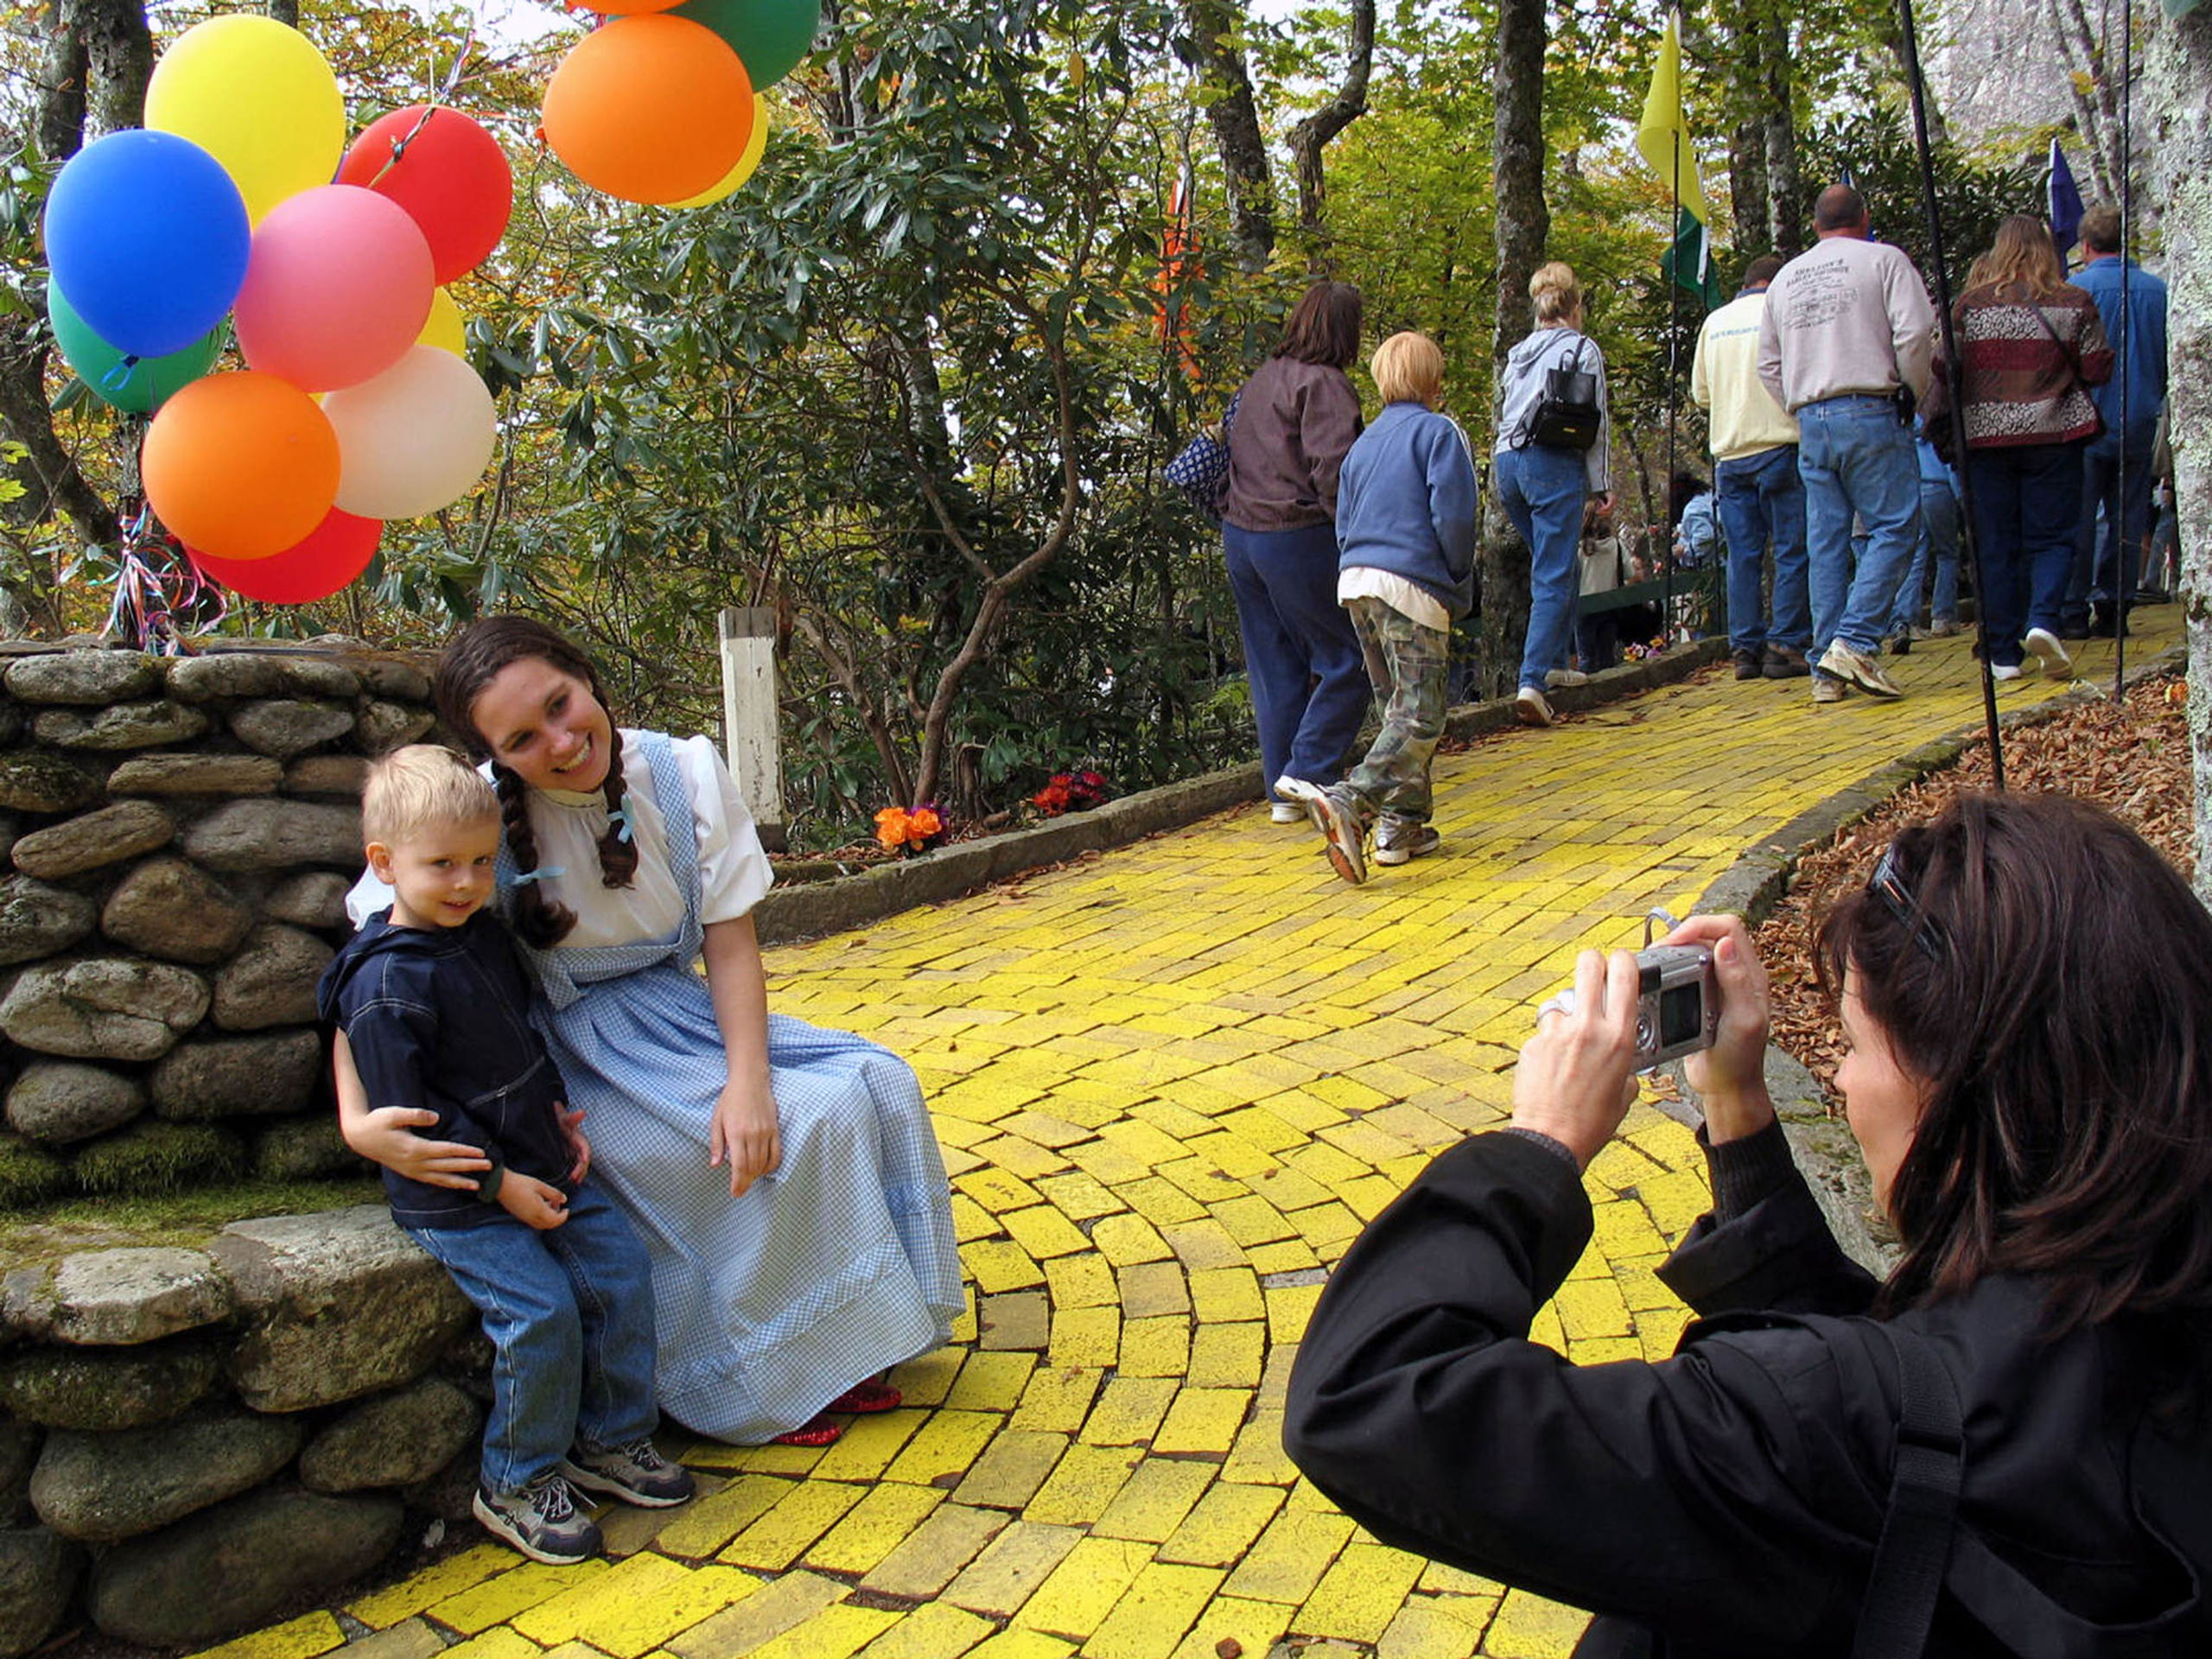 The Land of Oz, the Oz-theme amusement park that closed in 1980 after a 10-year run.